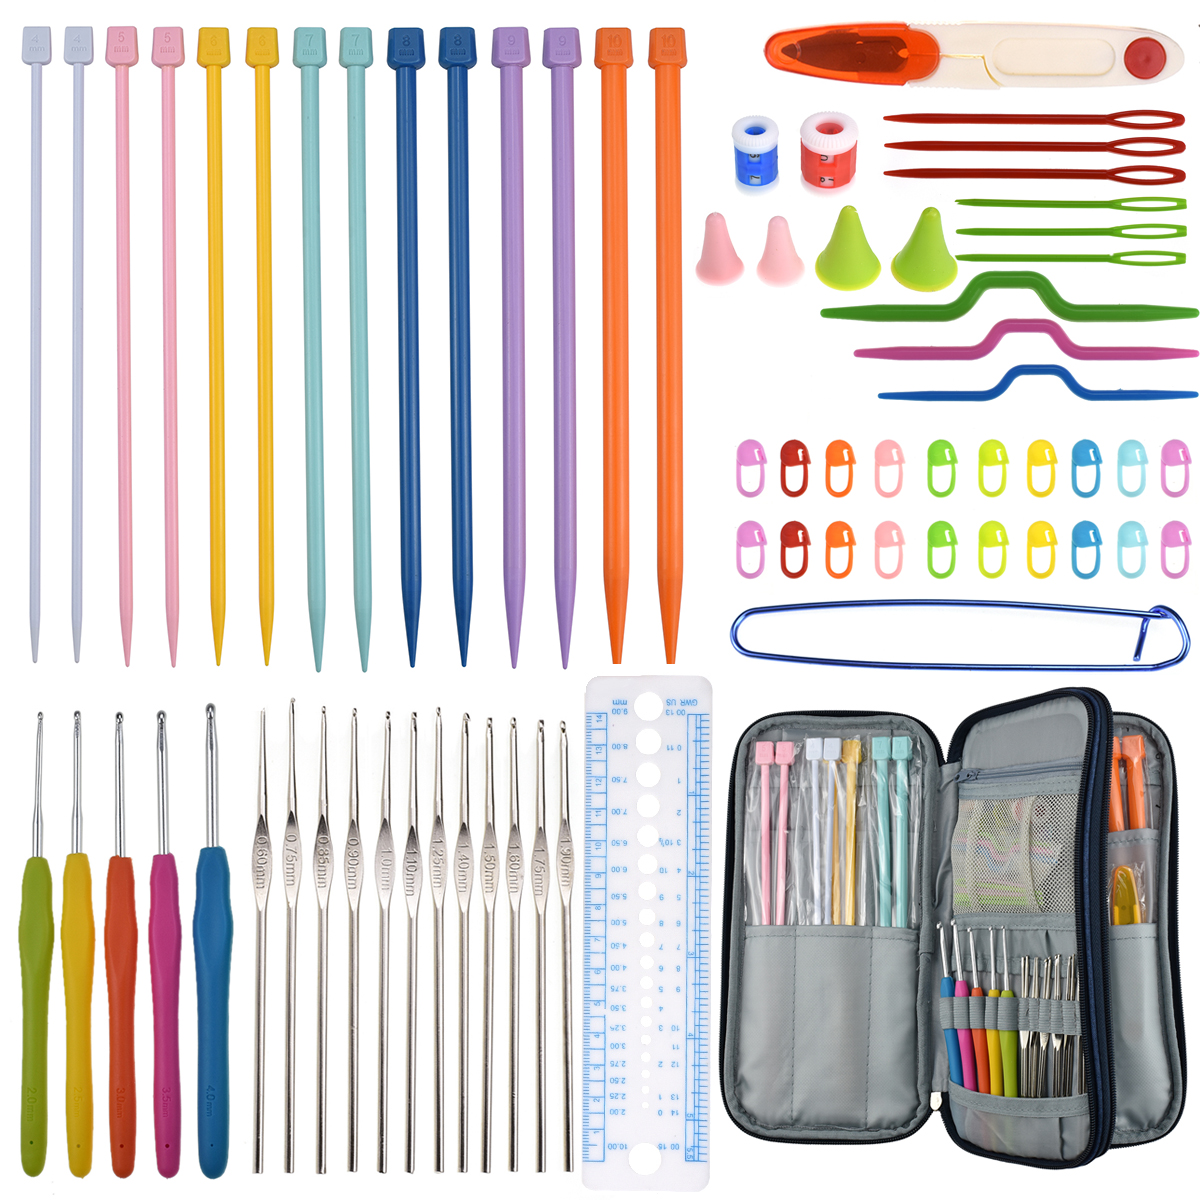 Crochet Hook Set 14Pcs Knitting Needle 5Pcs Crochet Hook Set Ergonomic Crochet Yarn Craft DIY Tool Storage Bag in Sewing Needles from Home Garden